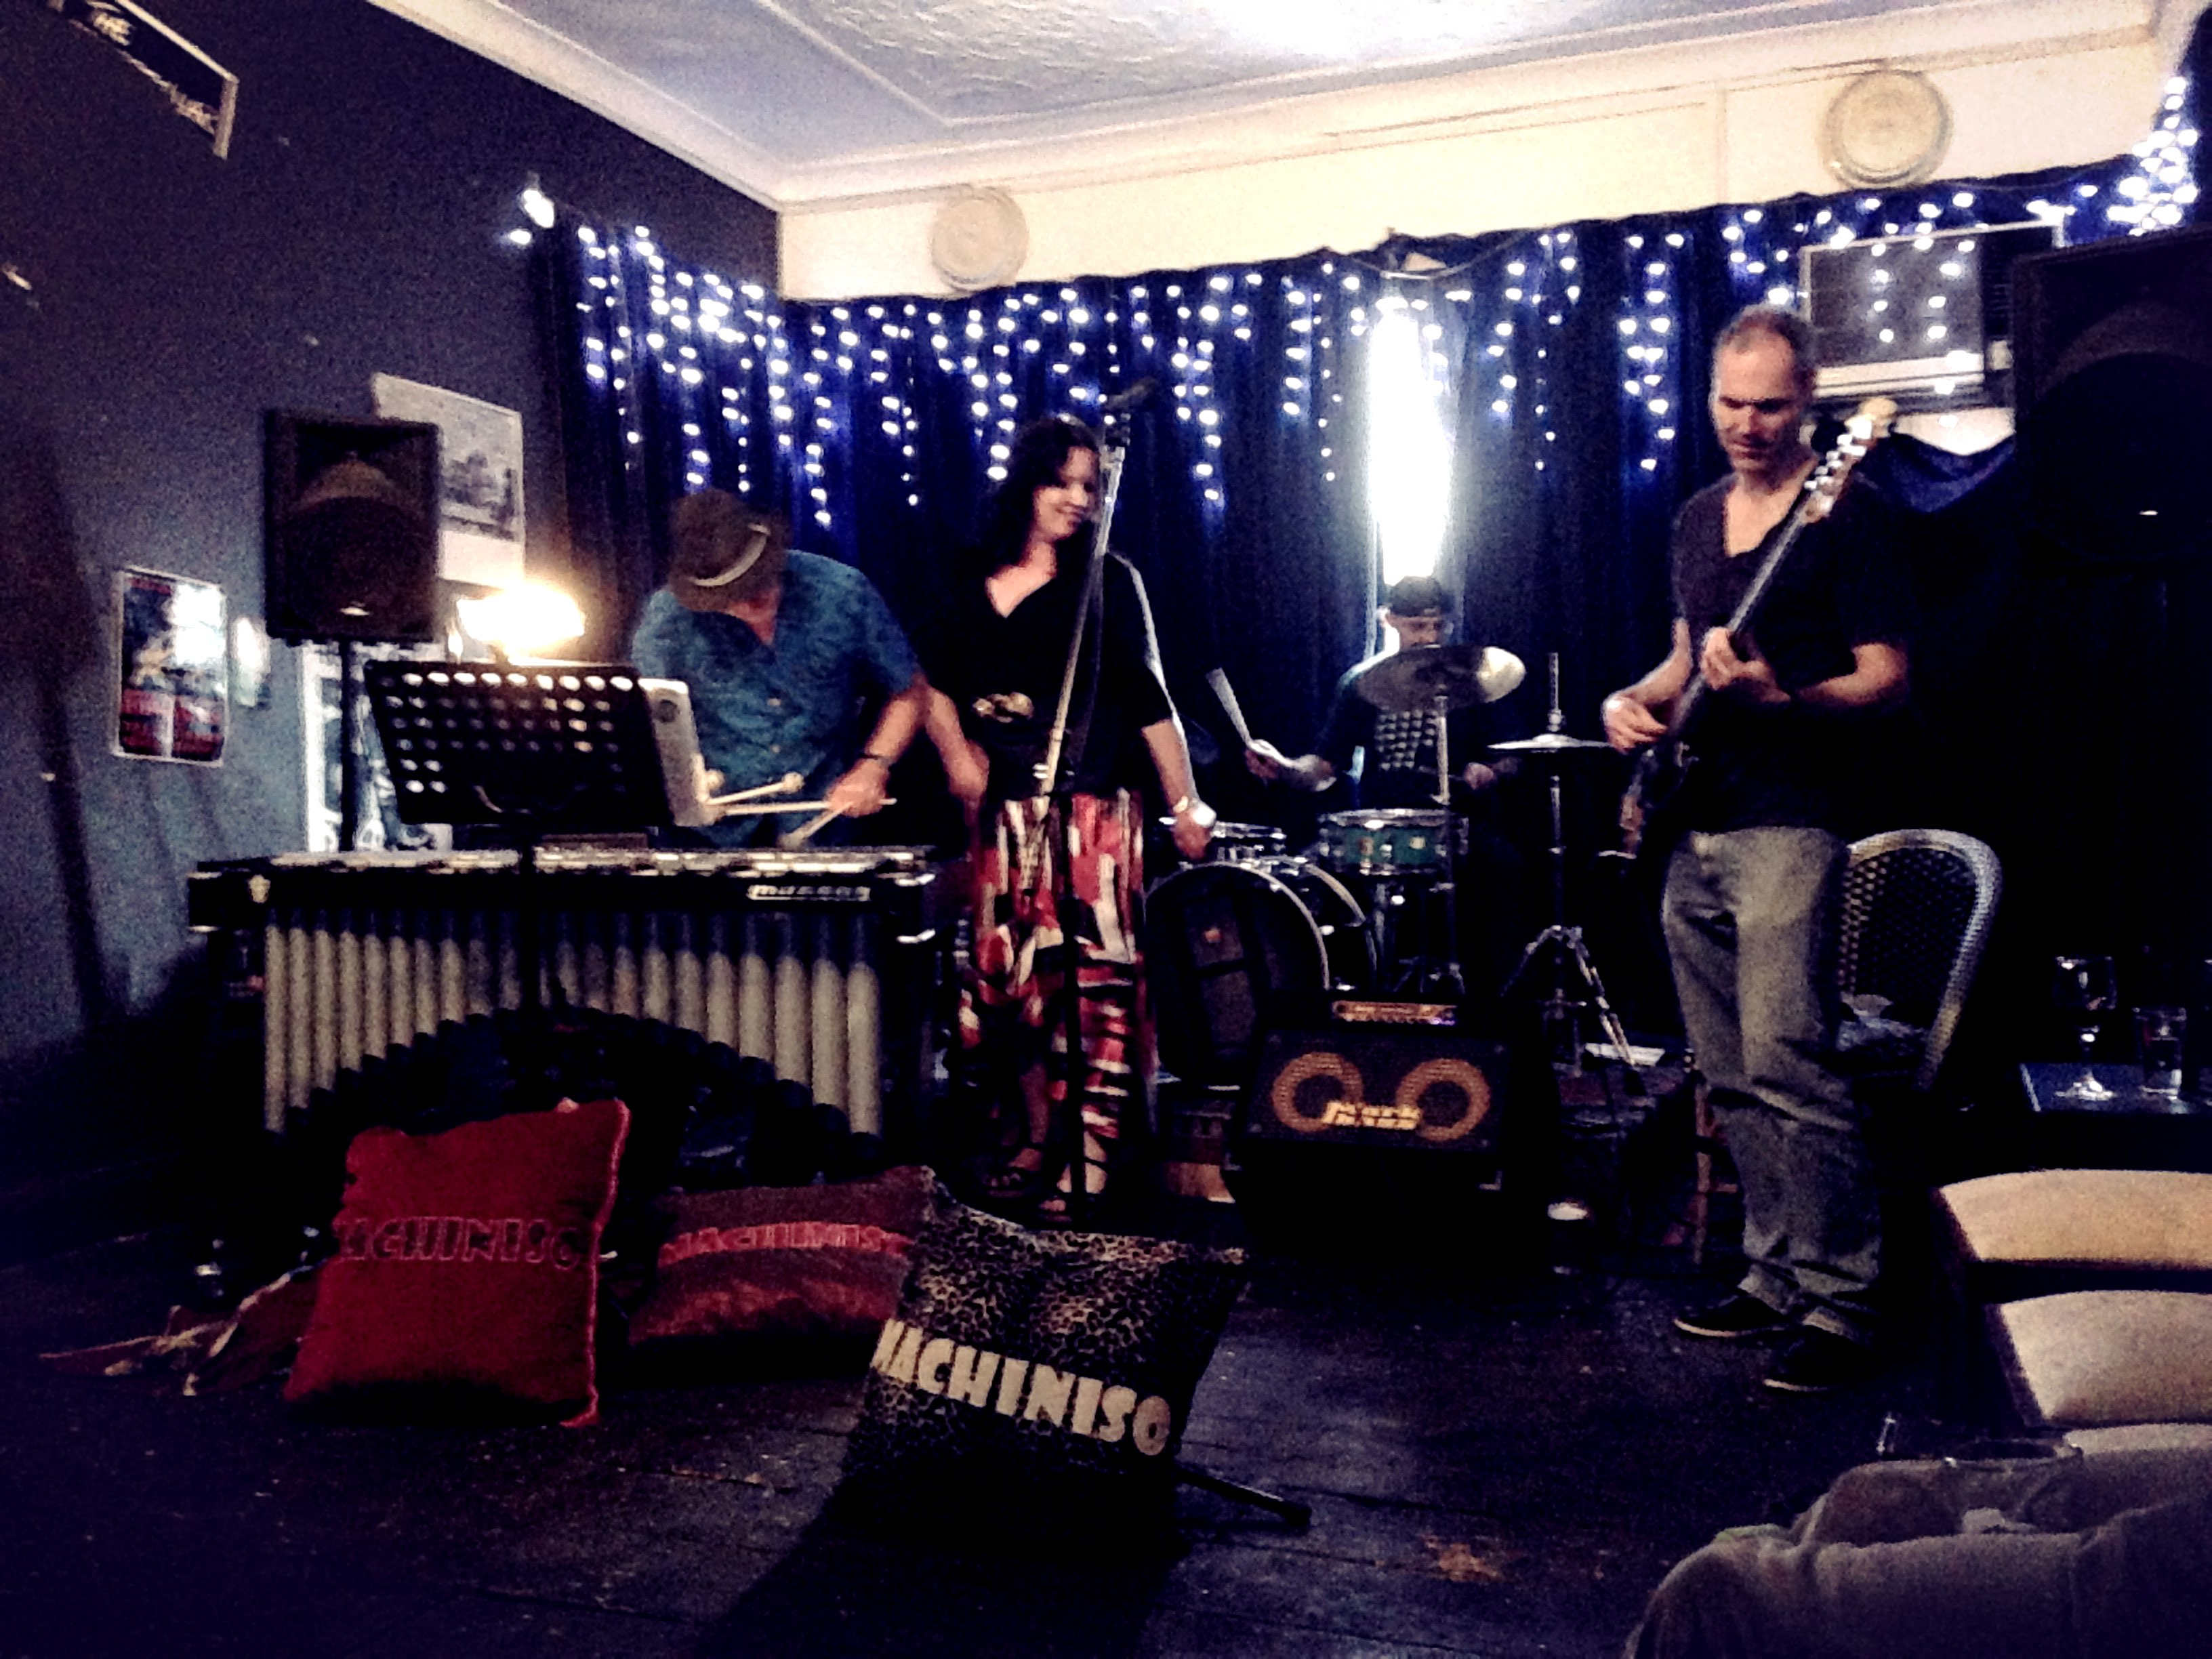 Machiniso at the Record Crate, Glebe, Sydney, 16 Nov 2014